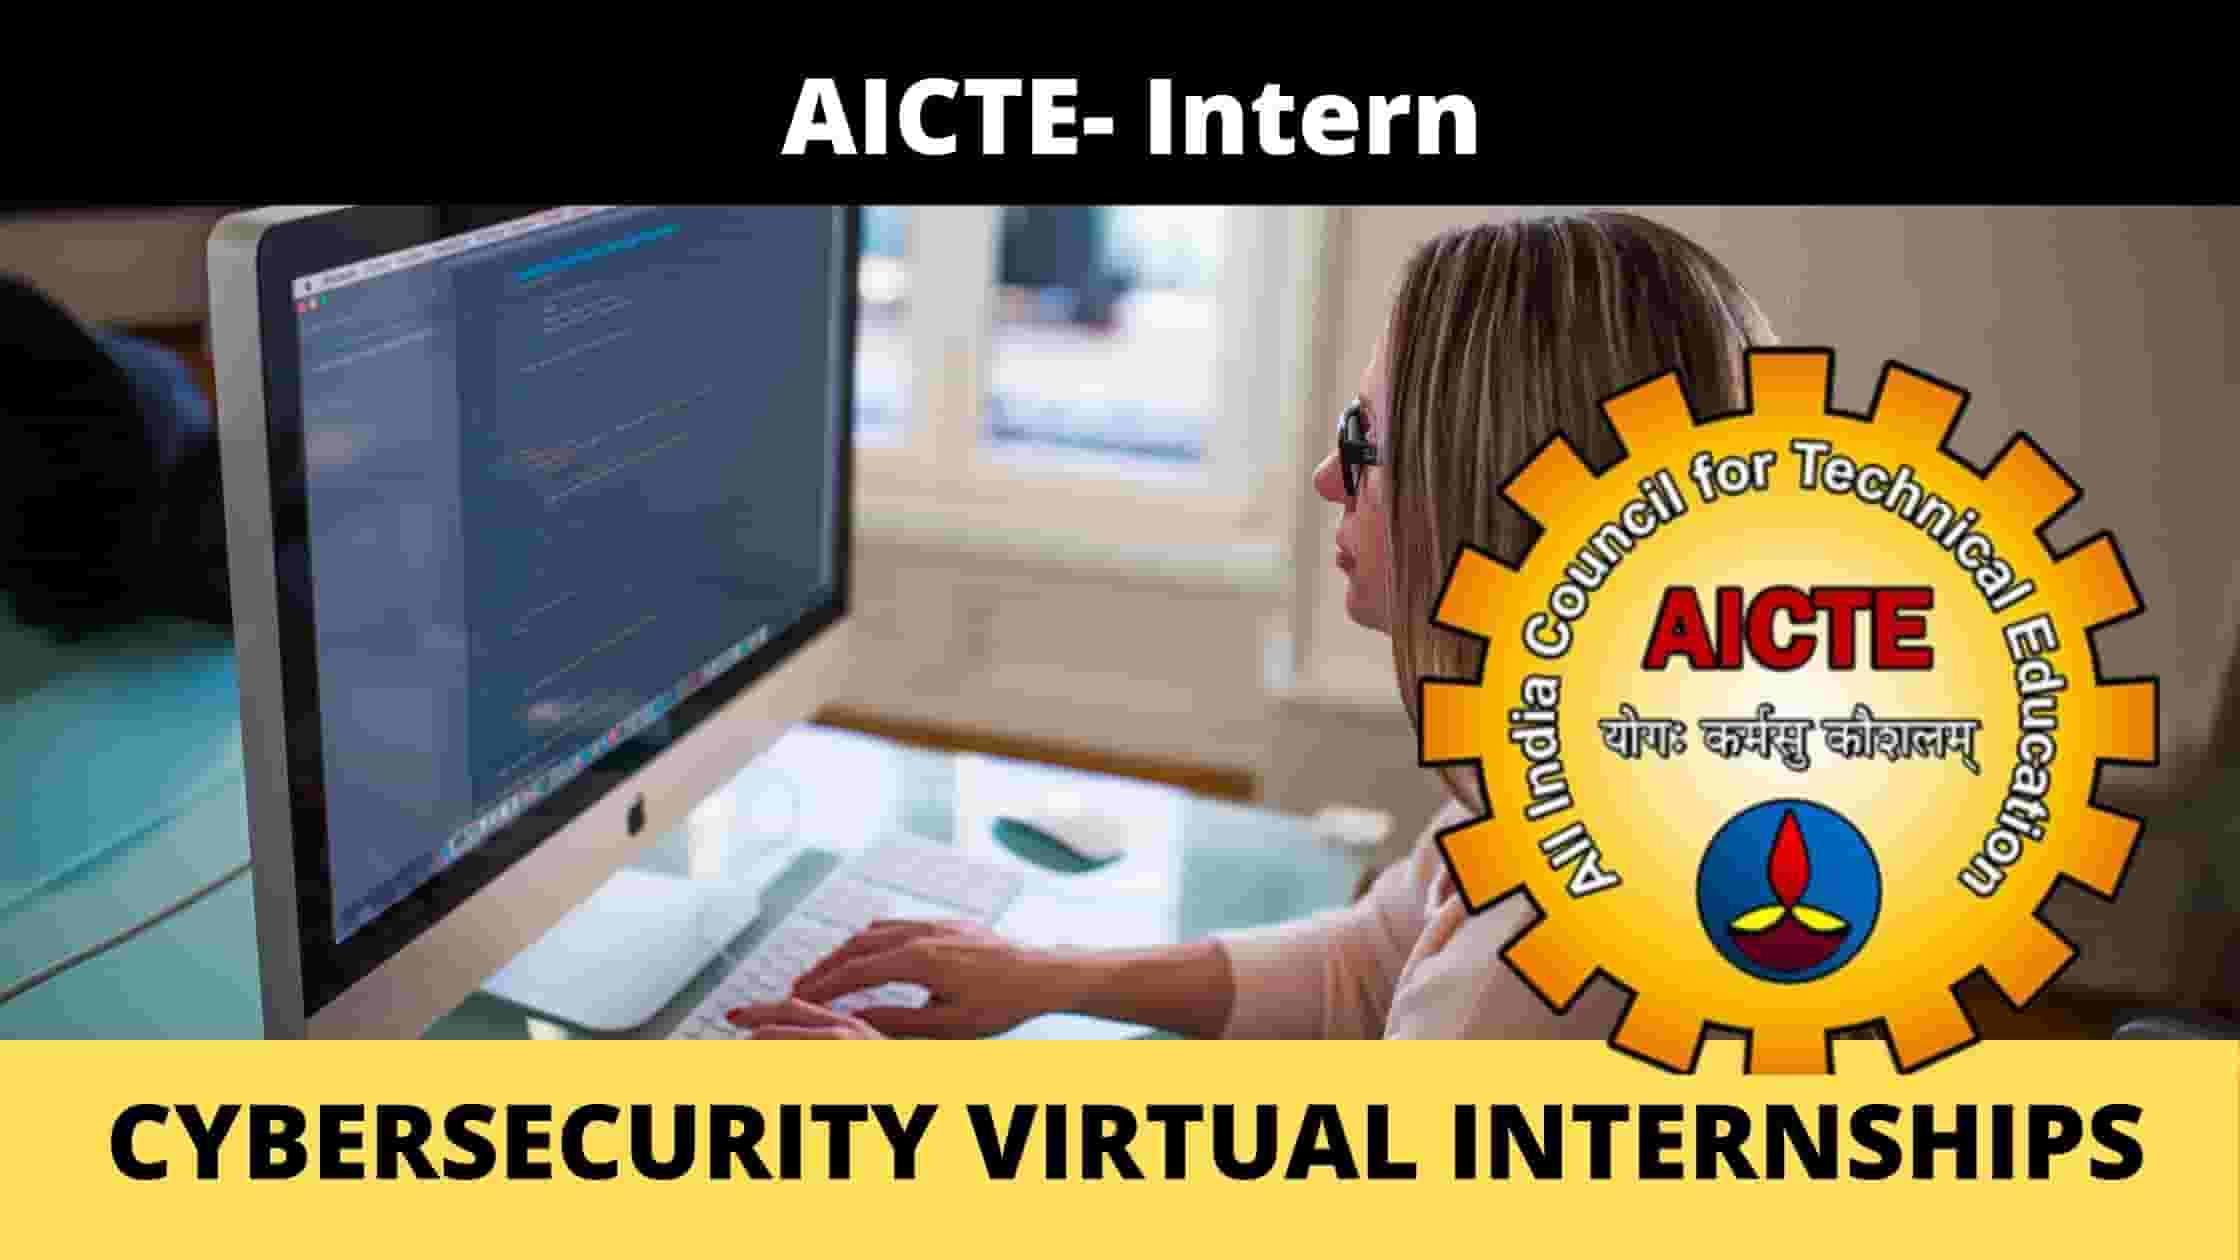 Cyber-Security Virtual Internships- AICTE and CISCO | Stipend